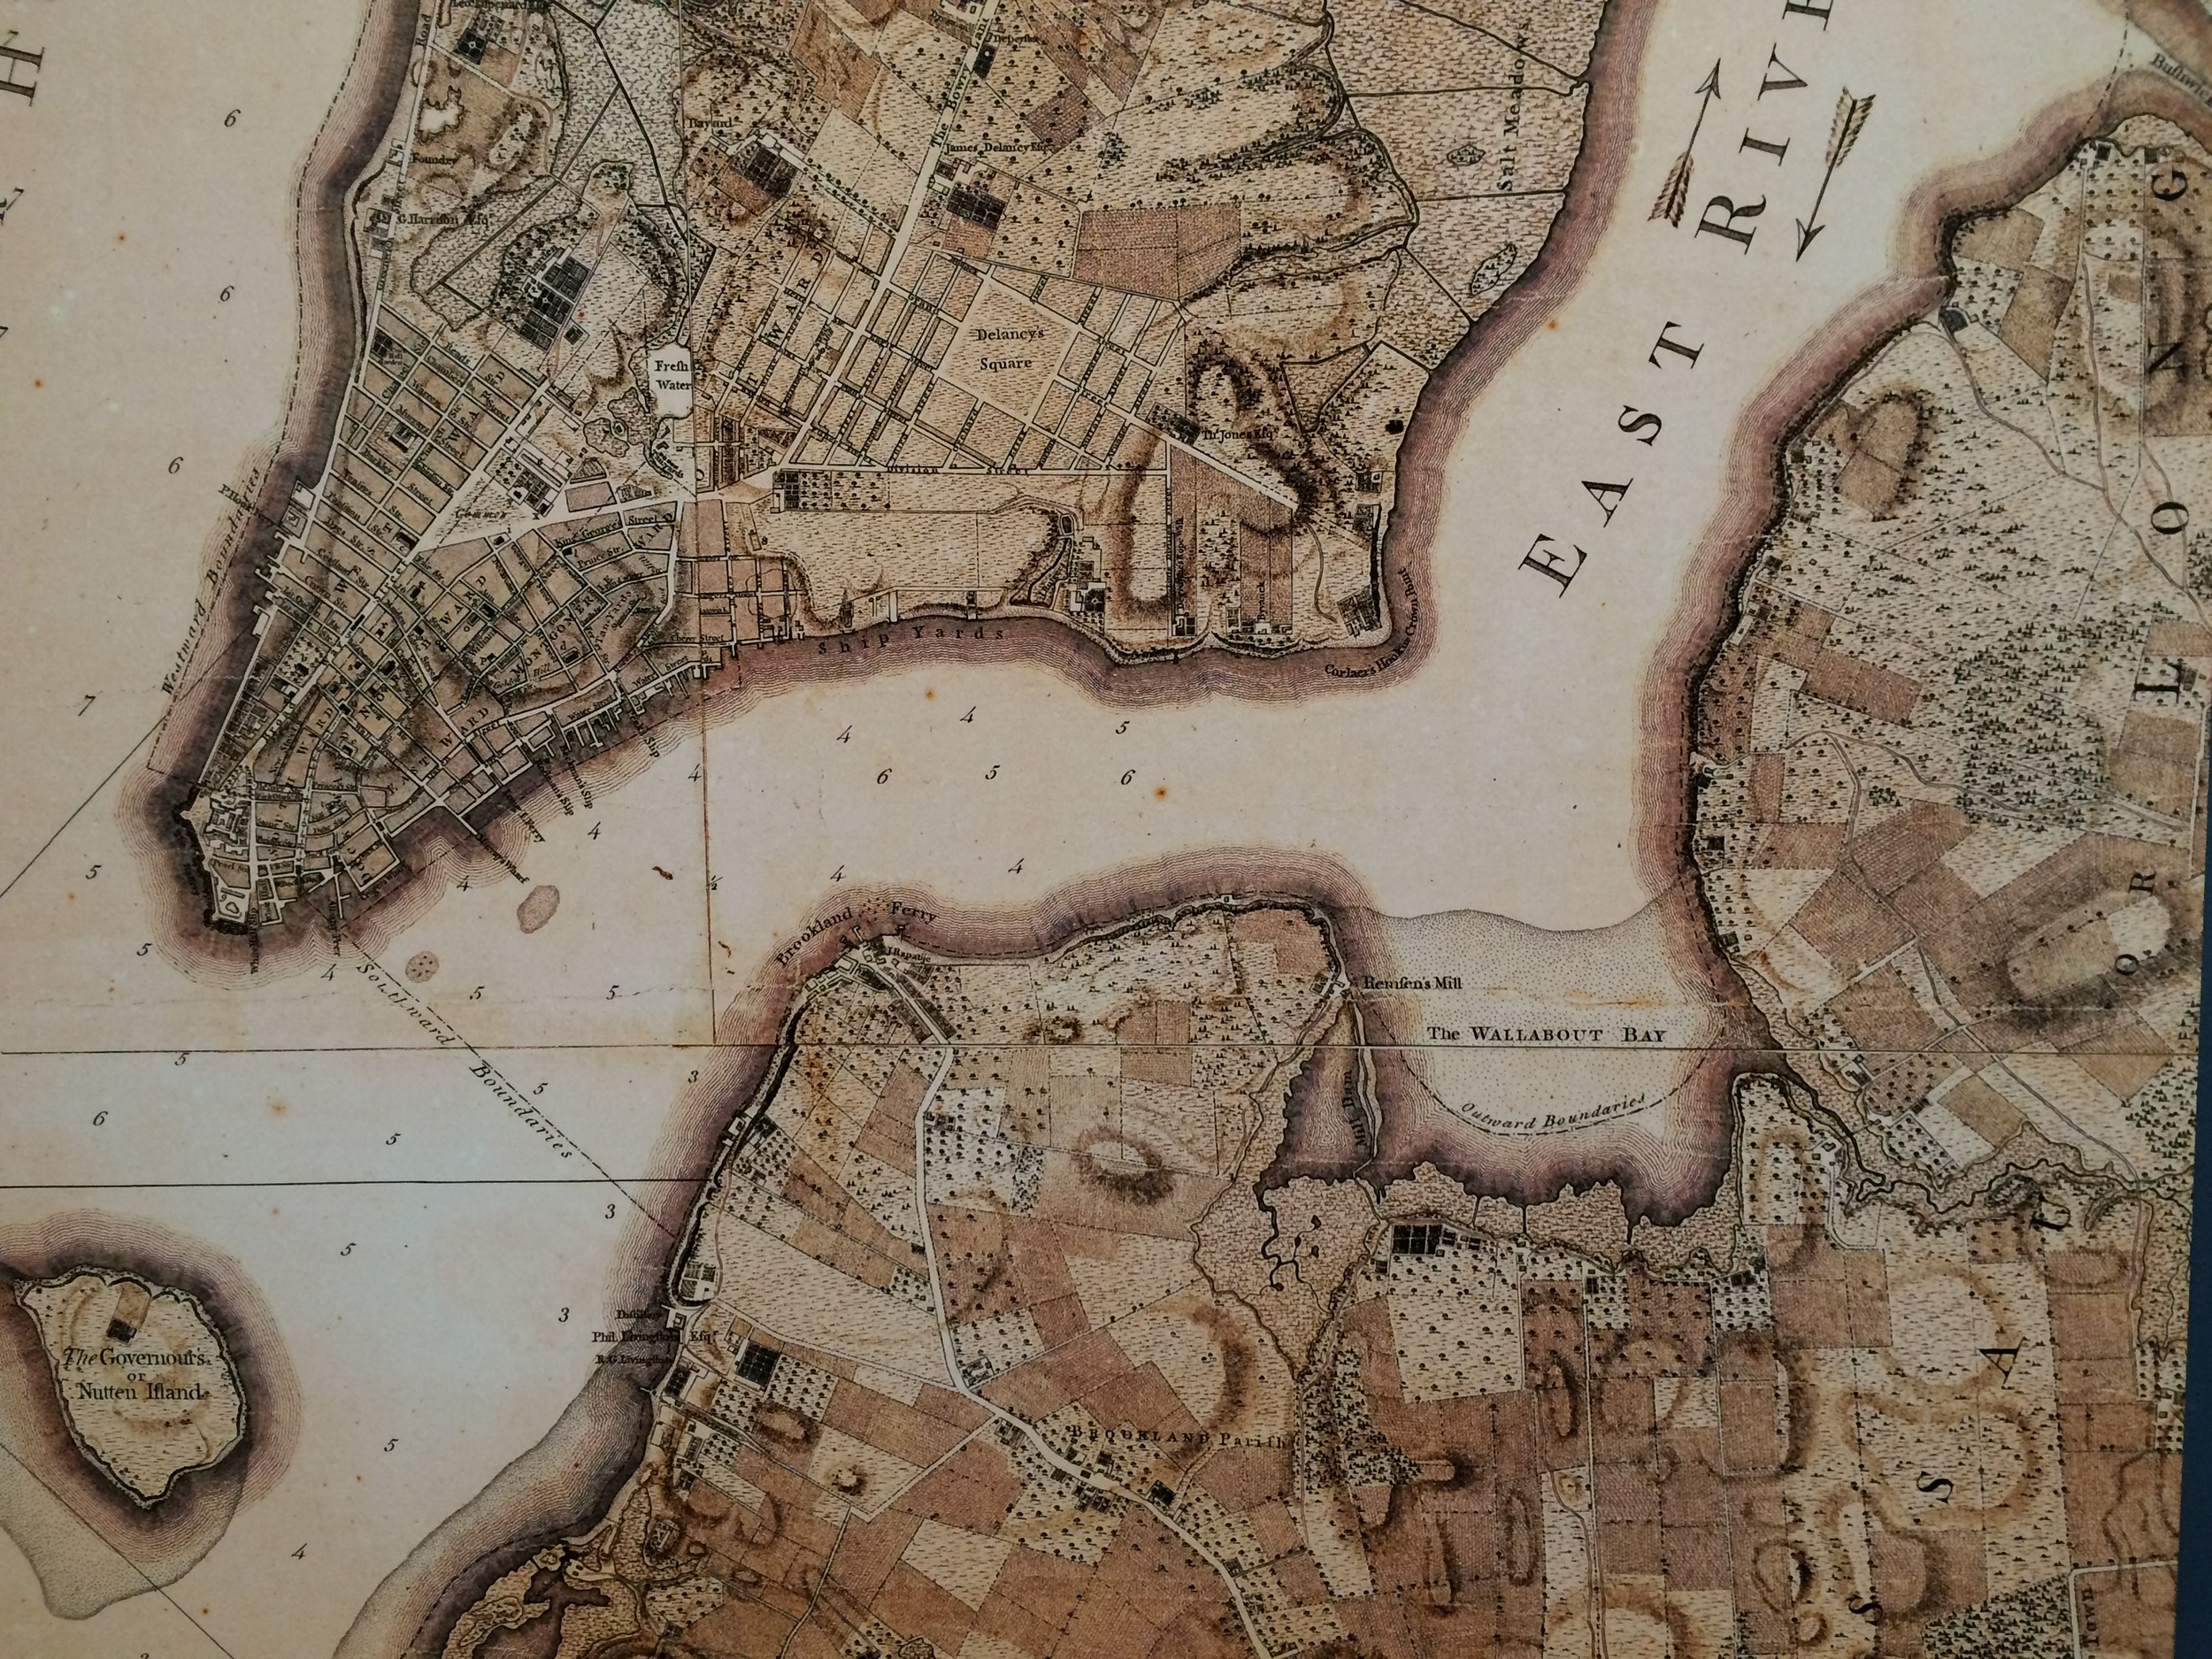 """Plan of the City of New York showing """"Brookland"""" as a mosaic of farms with shades bisected by Flatbush road. Wallabout Bay is shown just below the """"E"""" in East River and is the location of the BNY. Rendition by Army Lieutenant Bernard Ratzer, 1770."""